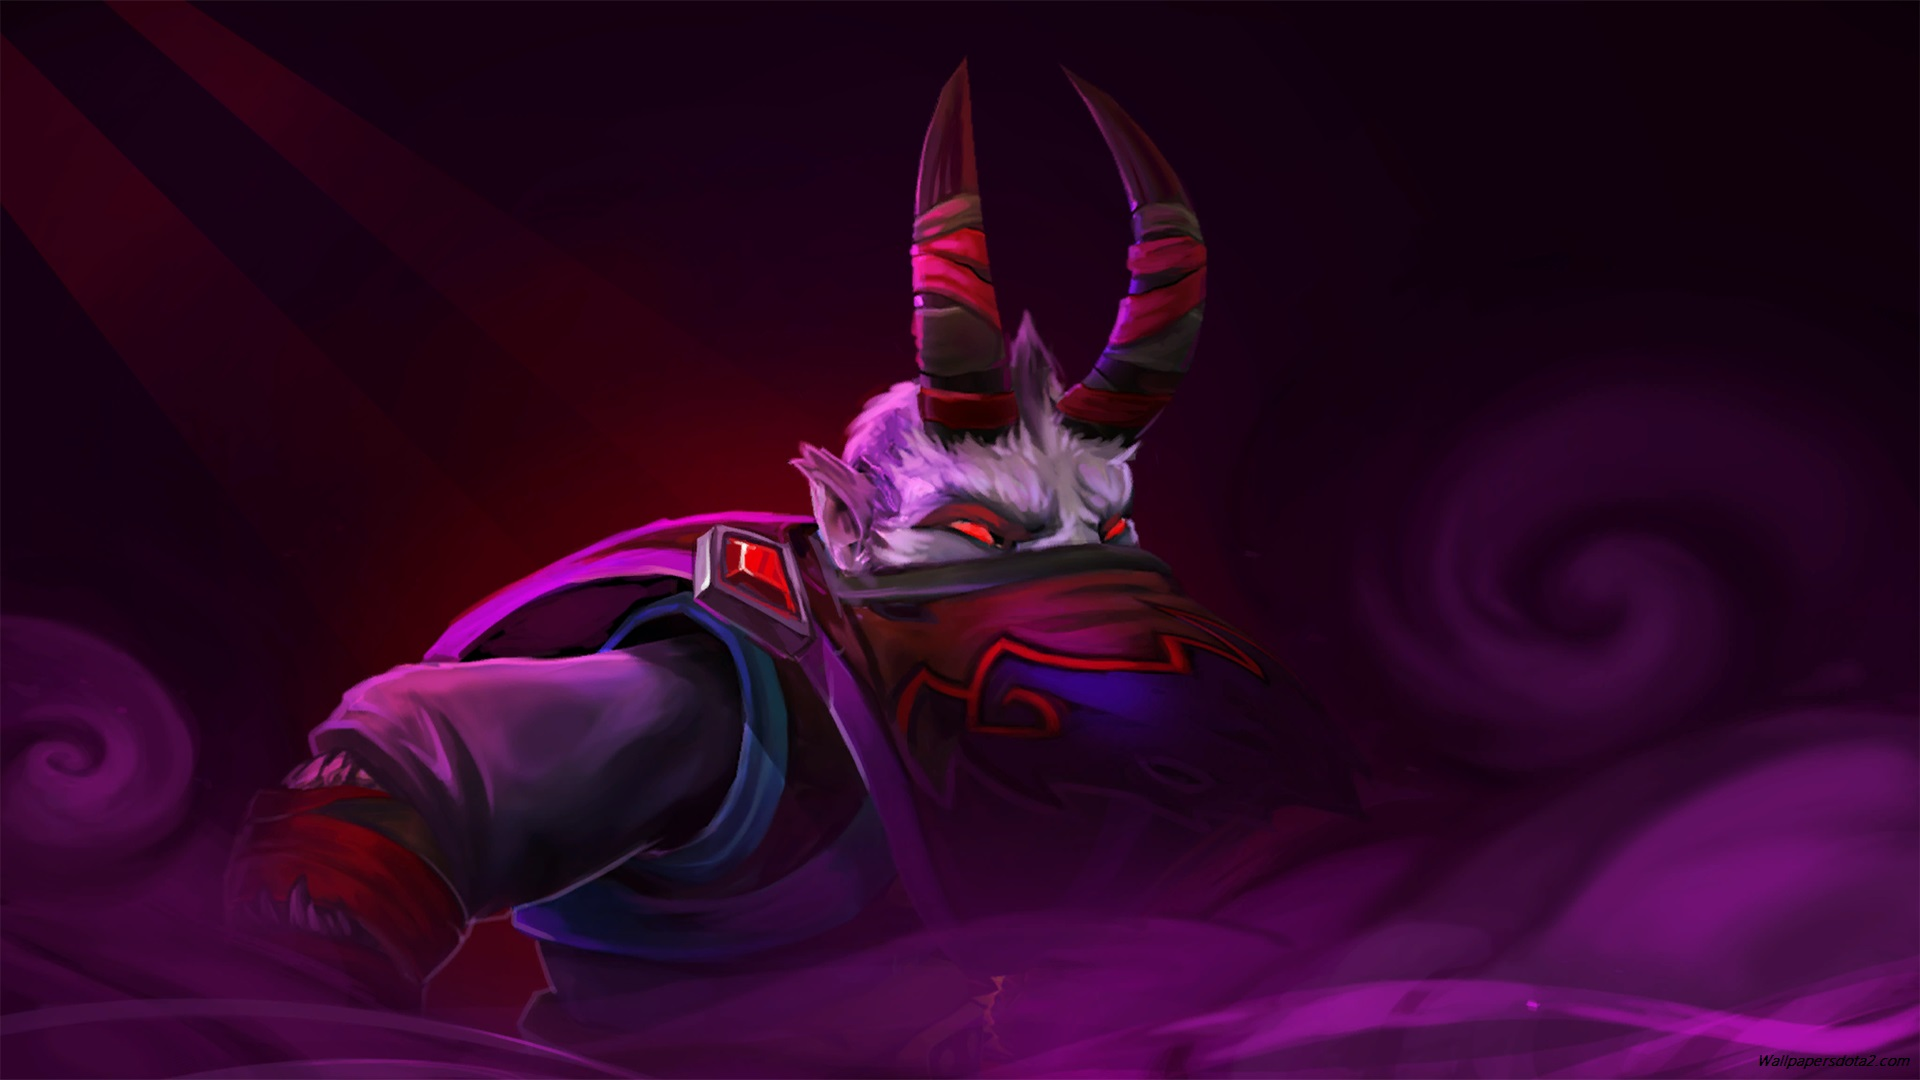 Riki Monstrous Reprisal Wallpapers Of Desktop Dota 2